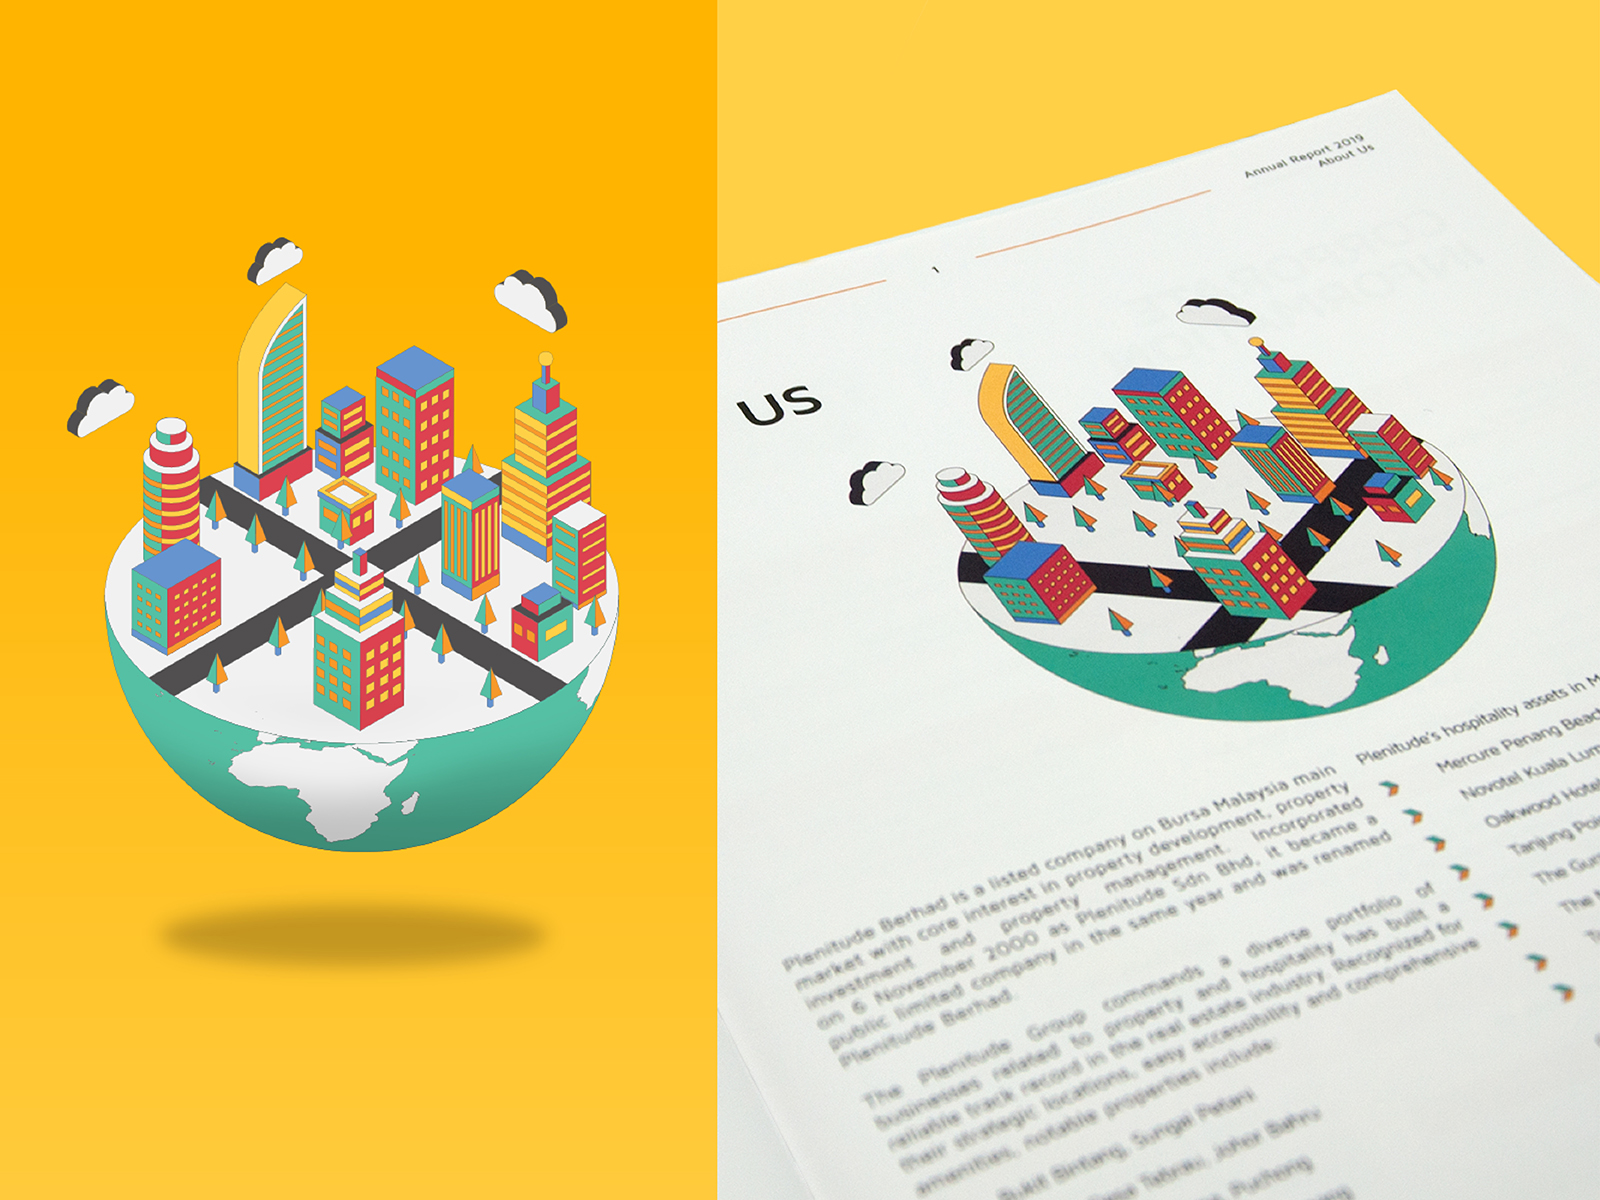 Plenitude annual report 2019 inner page layout design with graphic illustration for About Us section